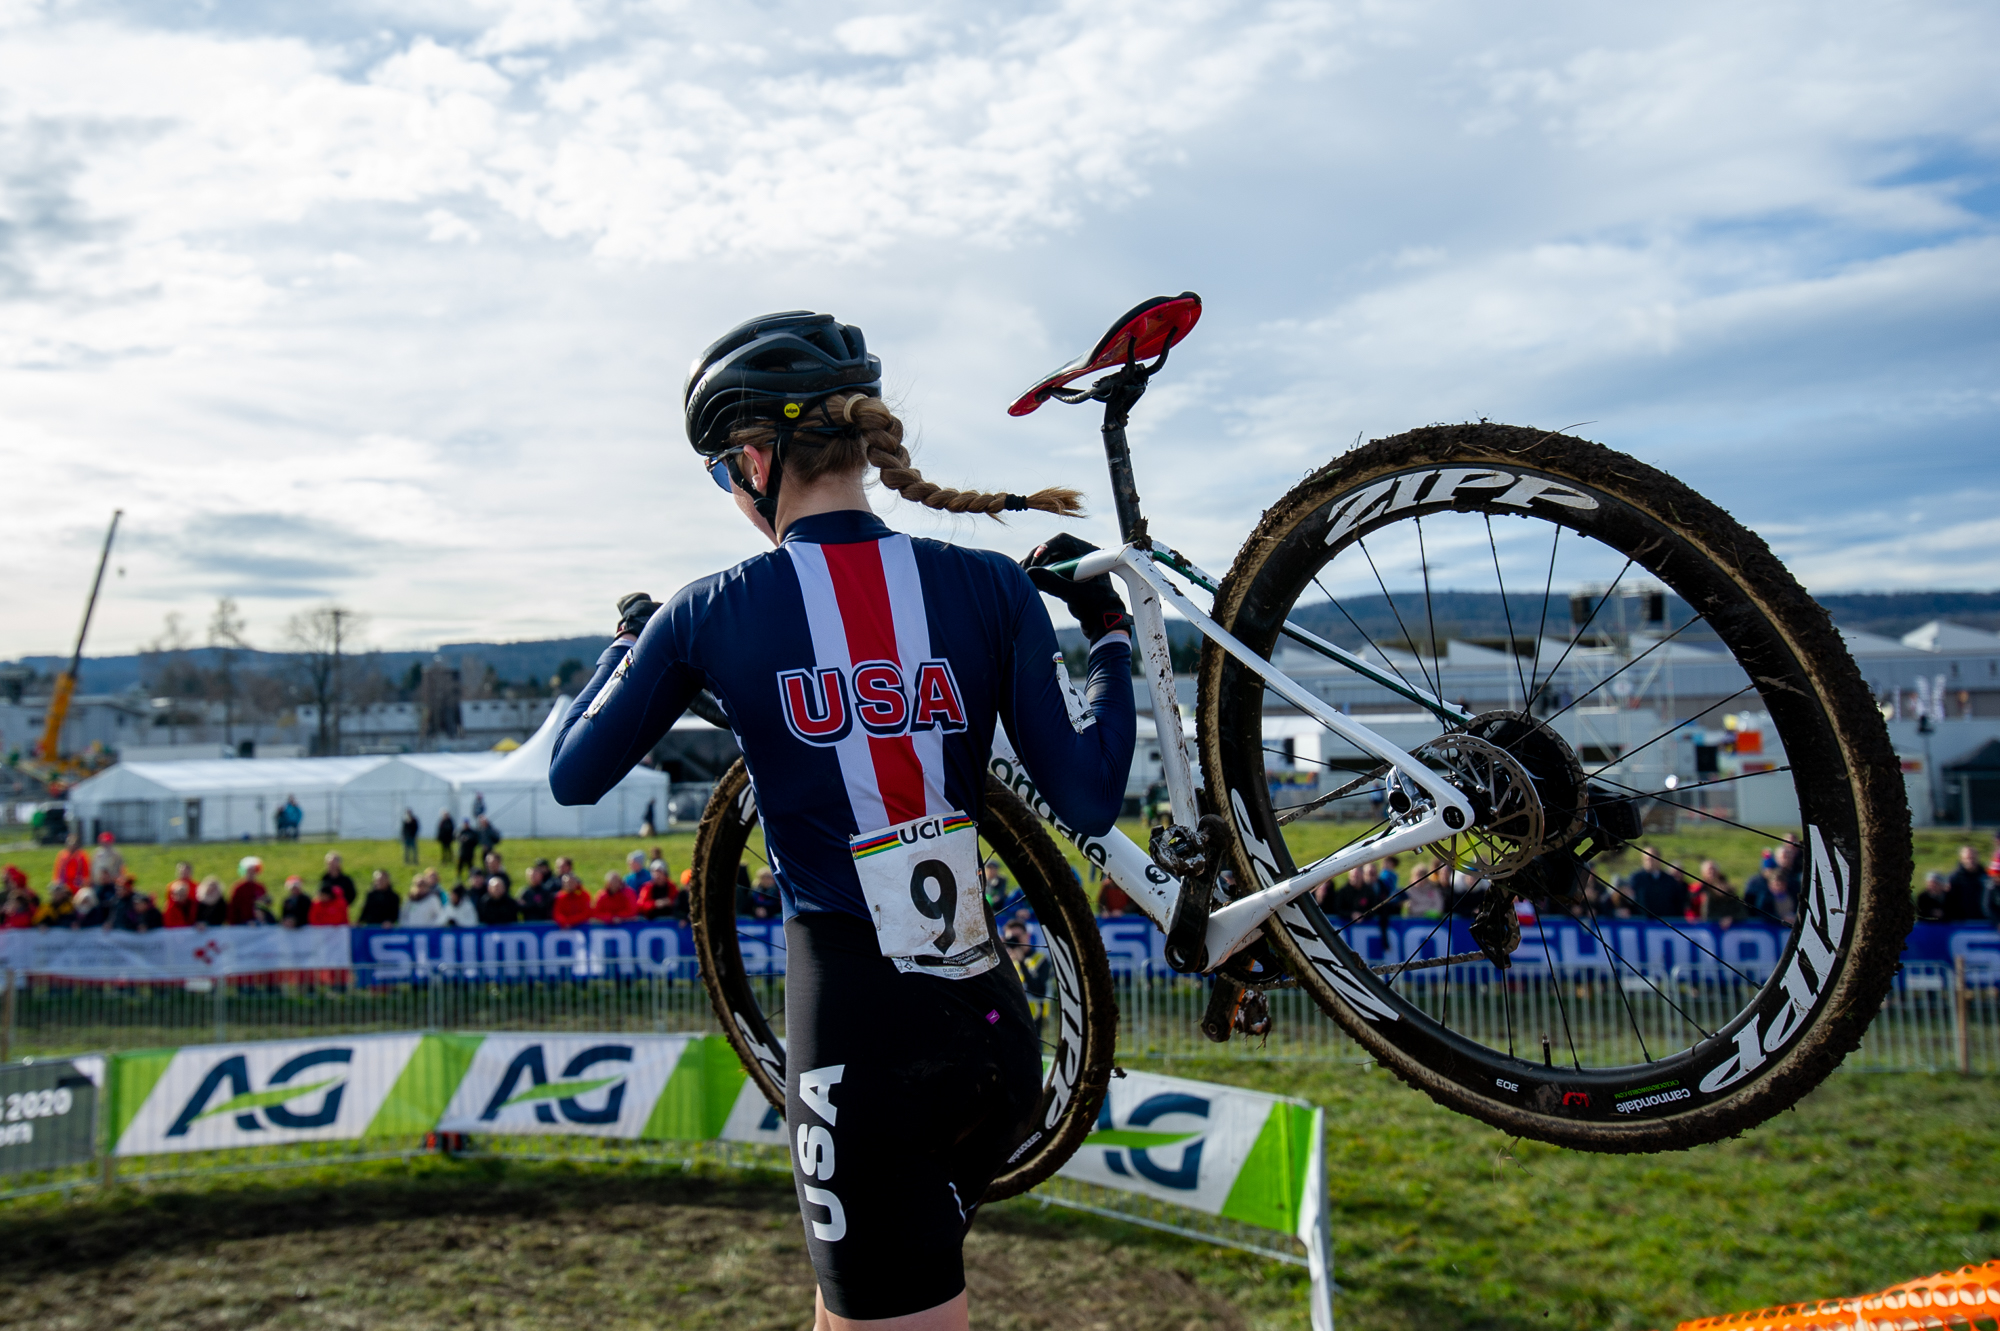 Lizzy Gunsalus shouldering her bike at the UCI Cyclocross World Championships